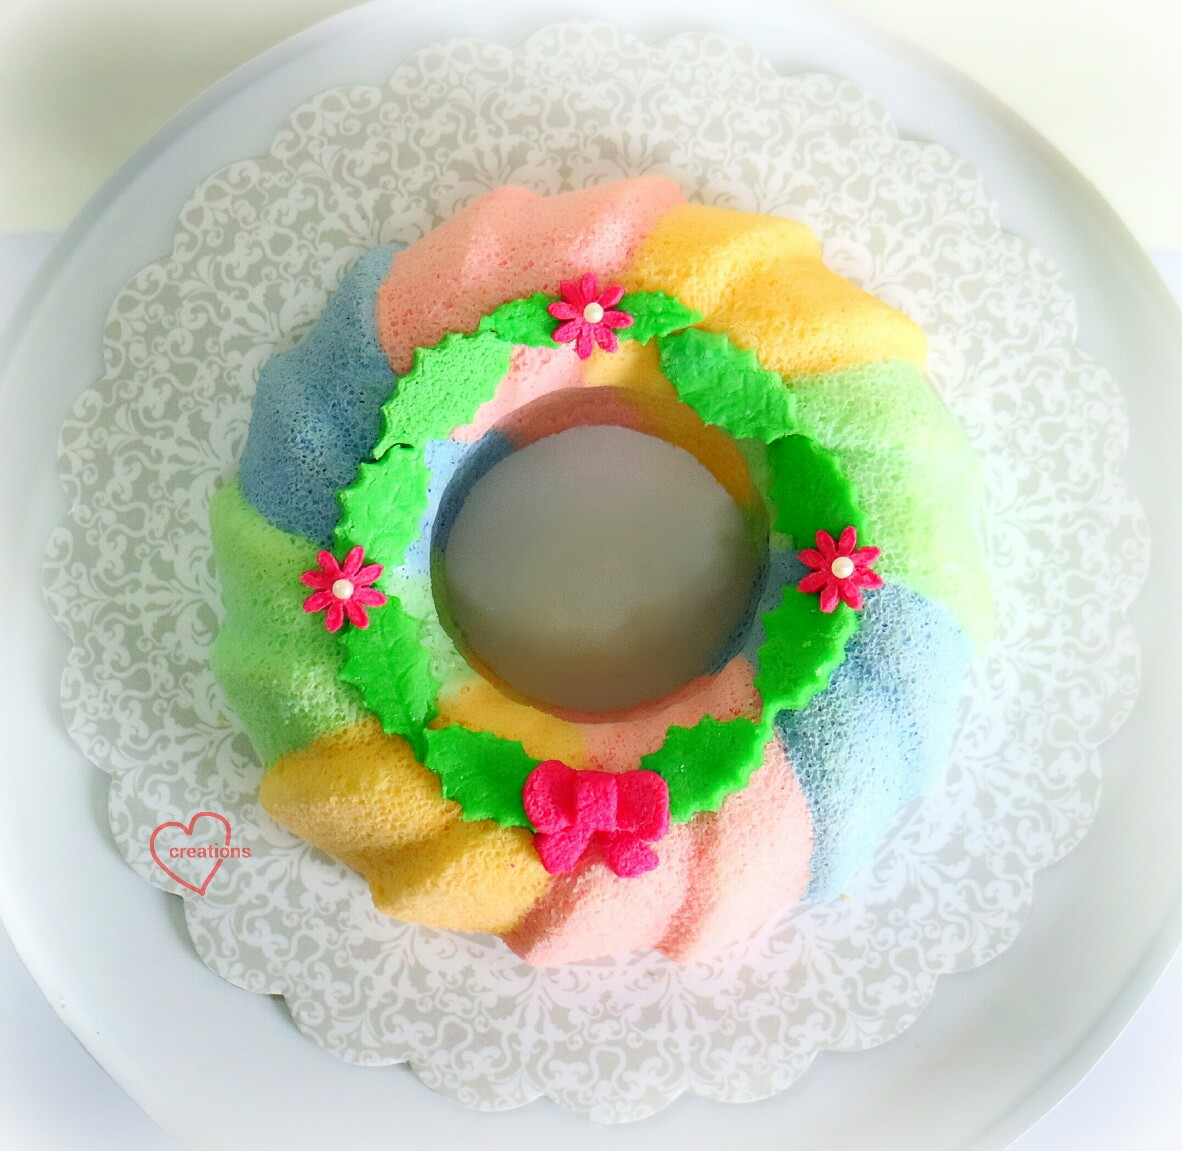 Can One Use Non Stick Bundt Pan For Chiffon Cake